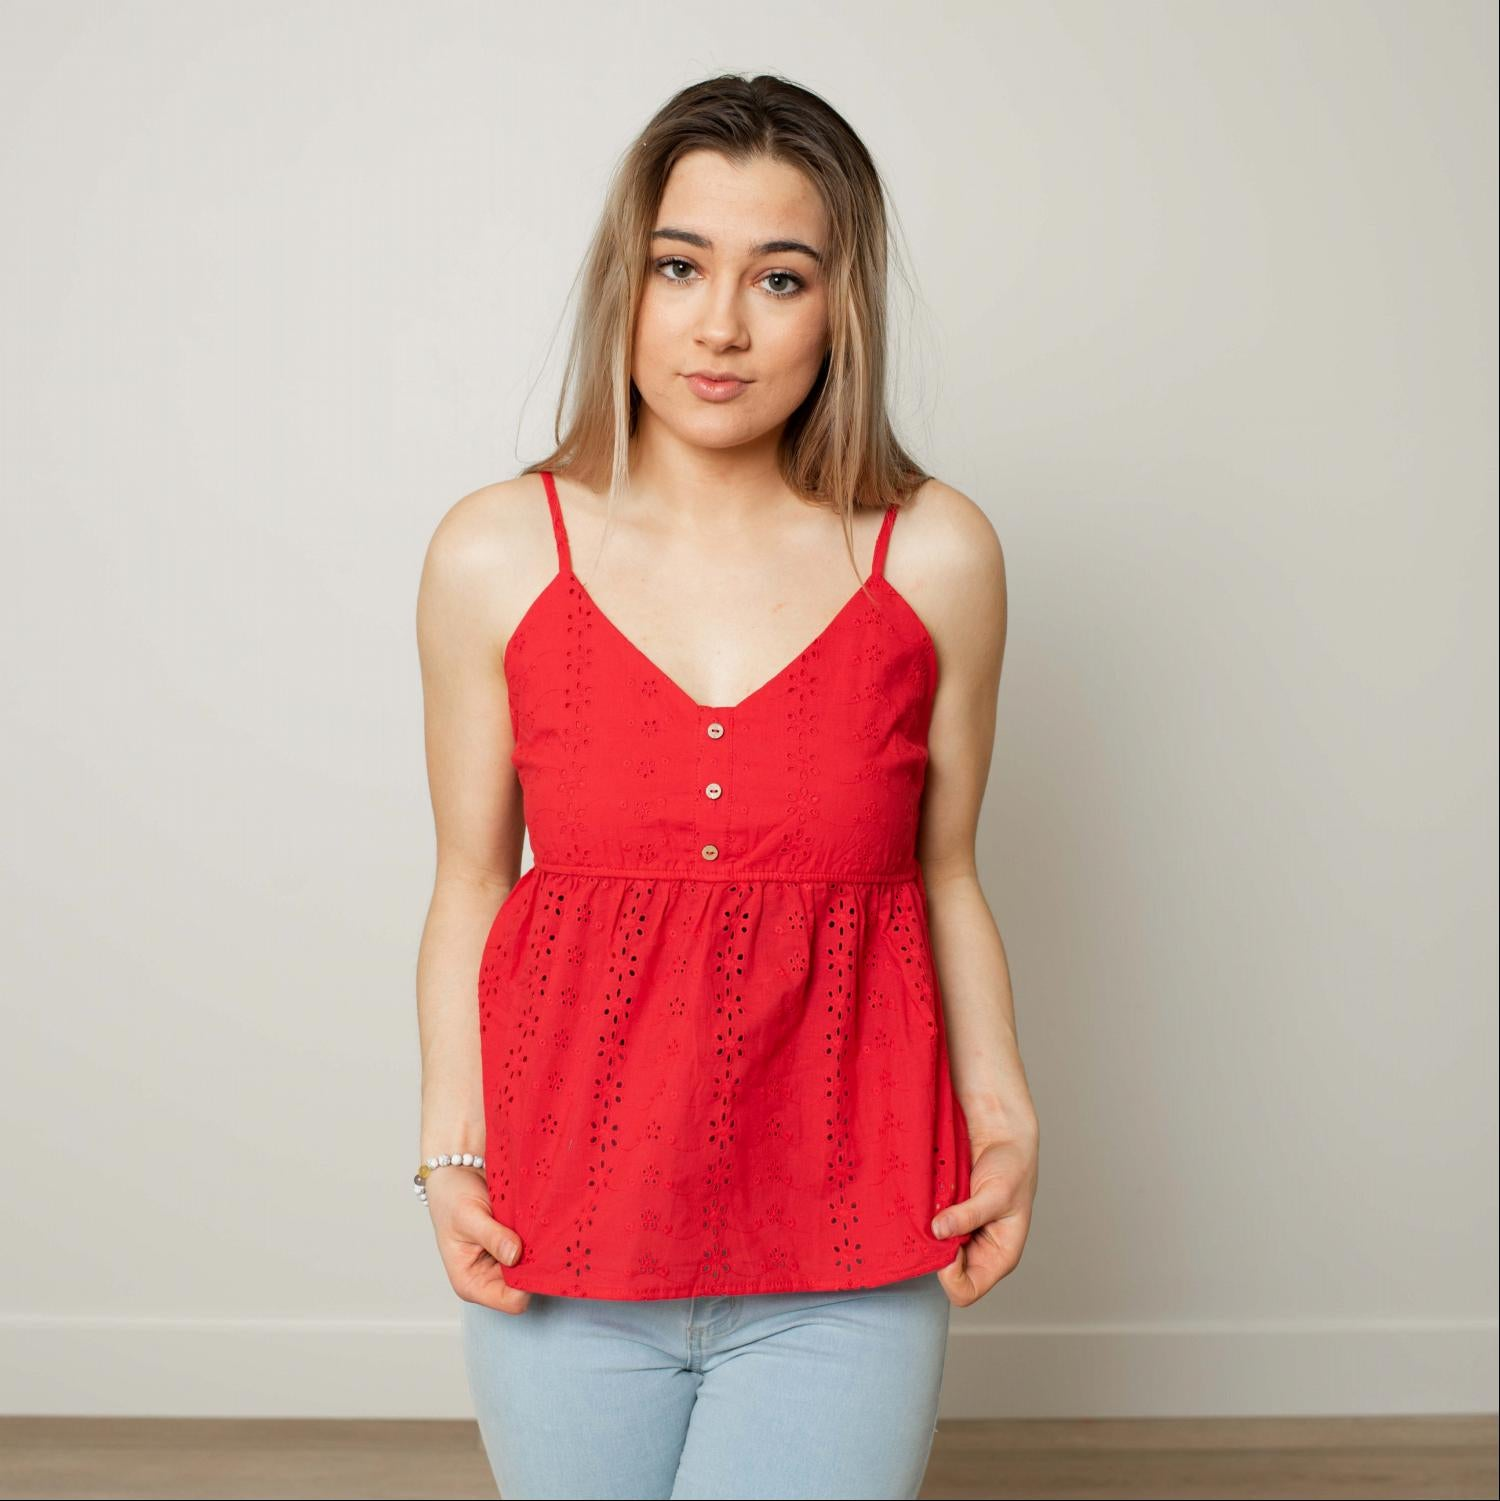 Red Women's Cotton Vest Tank Top Sleeveless Lace Loose Casual Solid Blouse S L USA